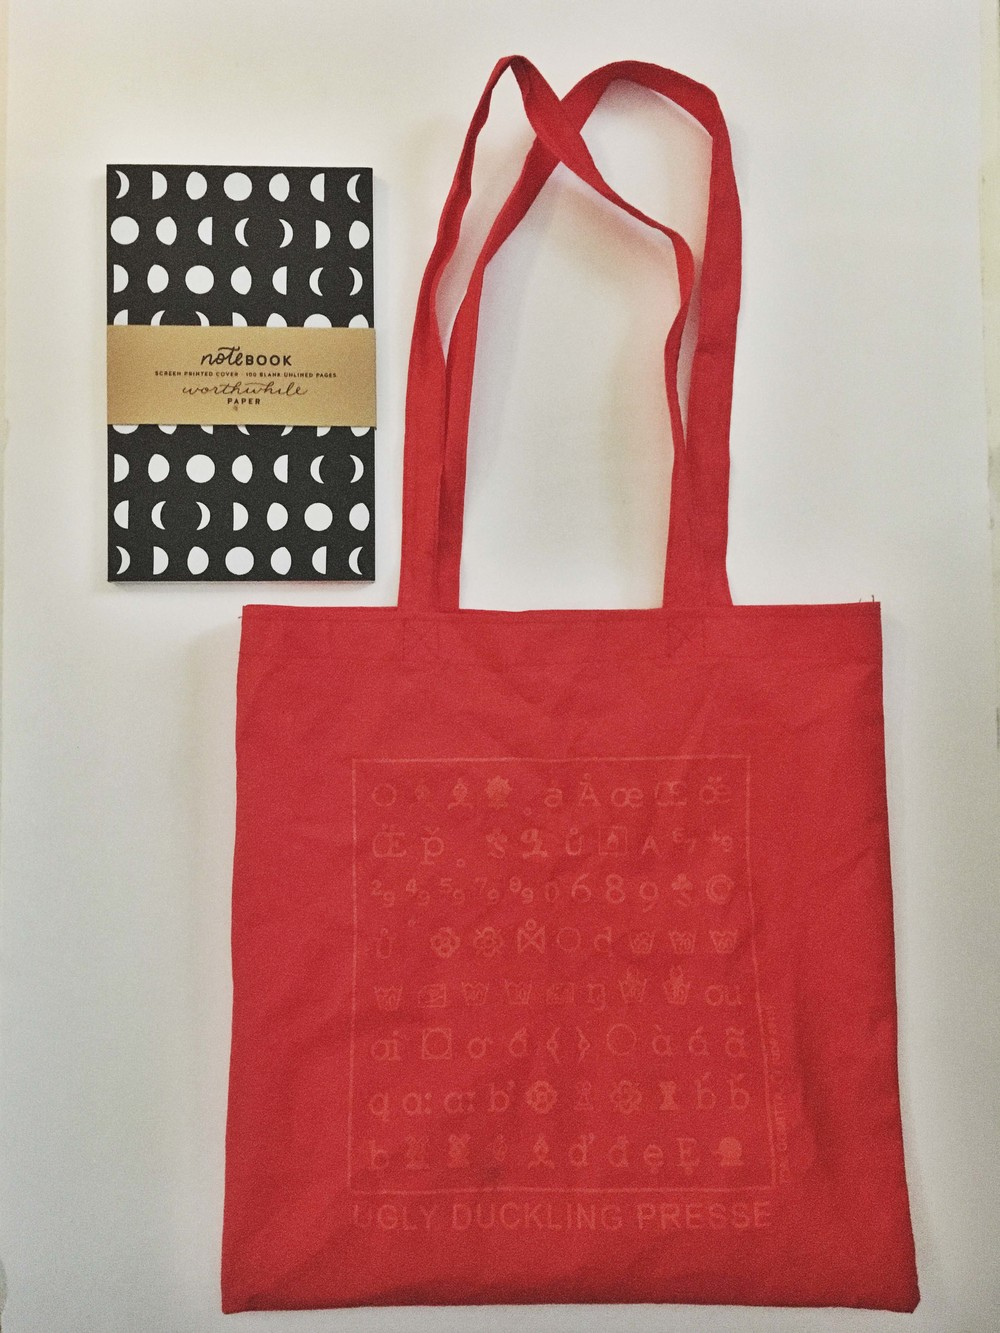 Tote bag from Ugly Duckling Presse & Notebook from Worthwhile Paper